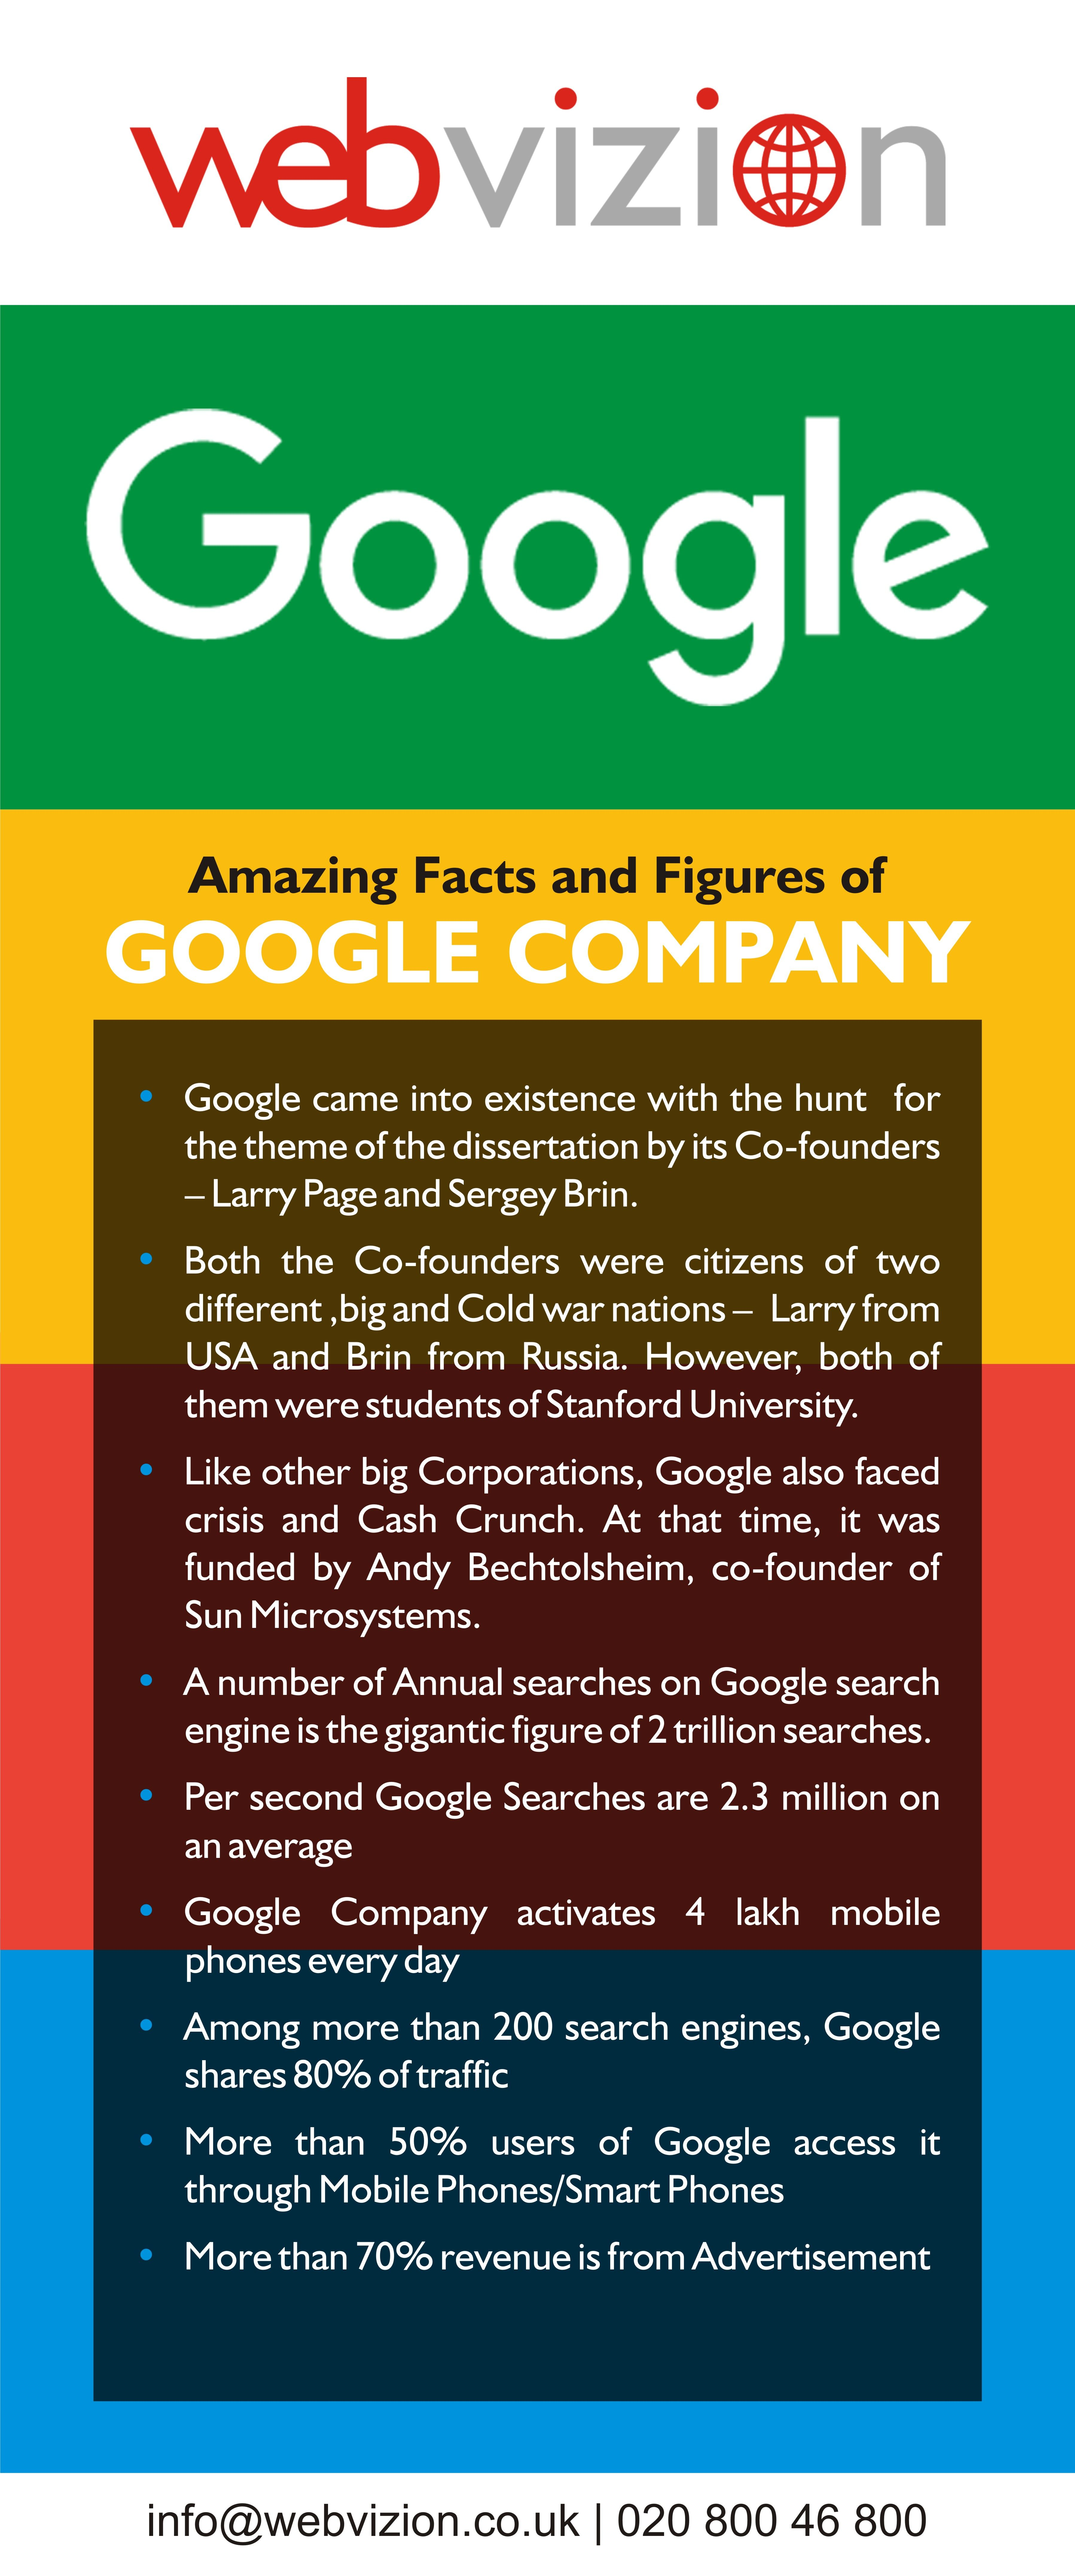 Amazing Facts And Figures Of Google Company If You Want To Get More Traffic On Your Website In Touch Today Call Us UK 07507910808 Or US